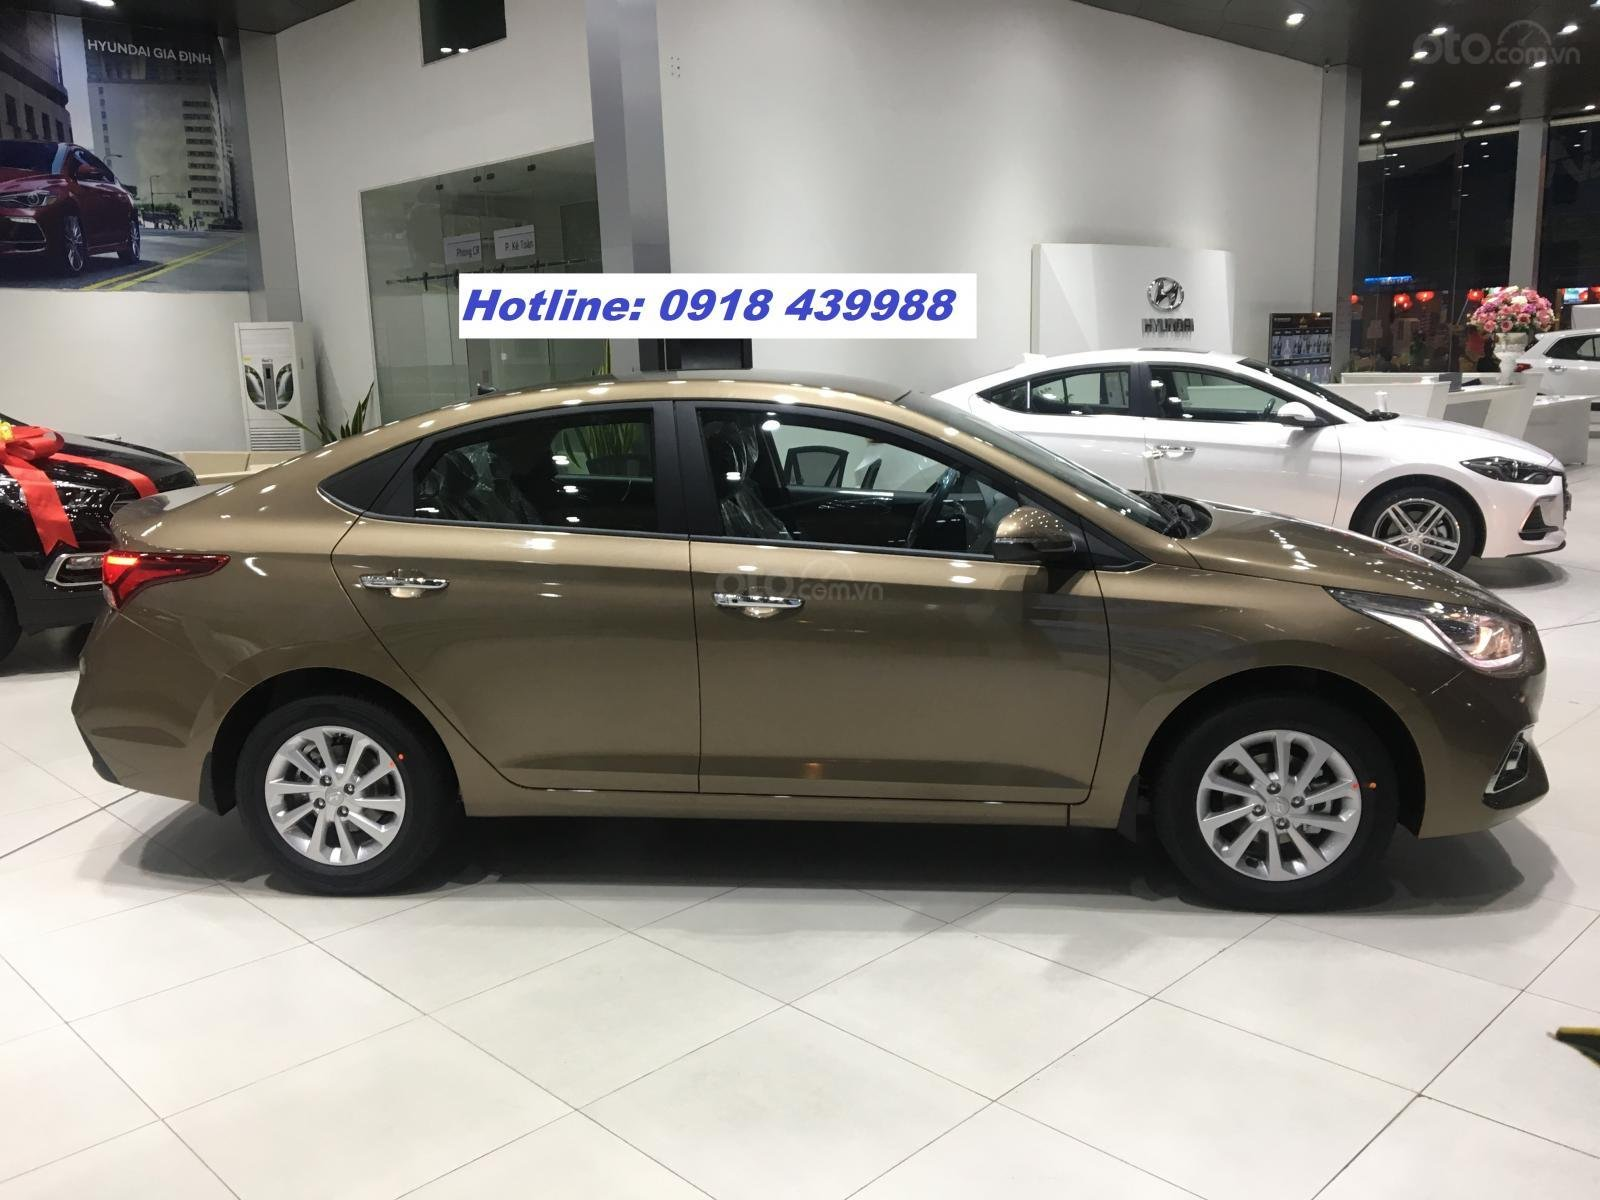 All New Accent 2019 MT FULL, giao xe ngay, thanh toán 145tr - LH: 0918439988-1